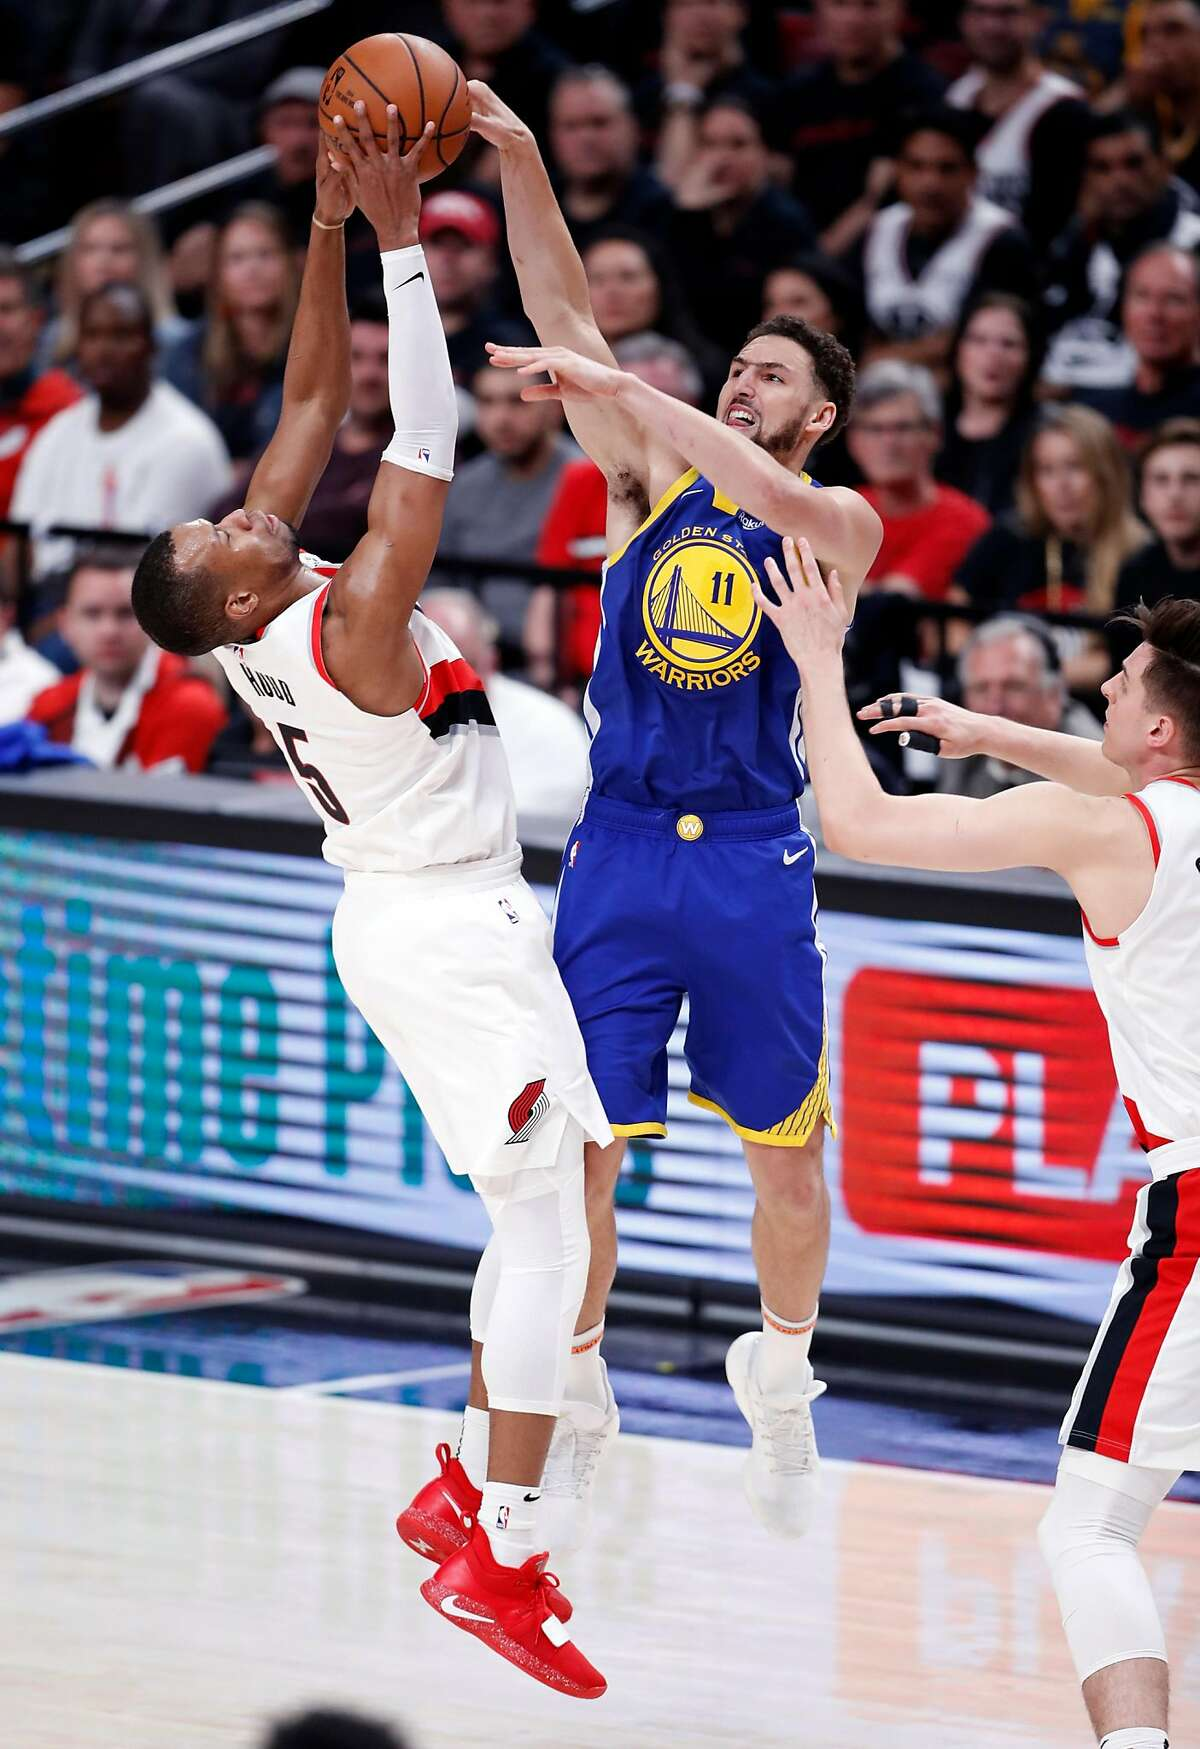 Golden State Warriors' Klay Thompson has the ball stolen by Portland Trail Blazers' Rodney Hood in 2nd quarter in Game 3 of the NBA Western Conference Finals at Moda Center in Portland, Oregon on Saturday, May 18, 2019.